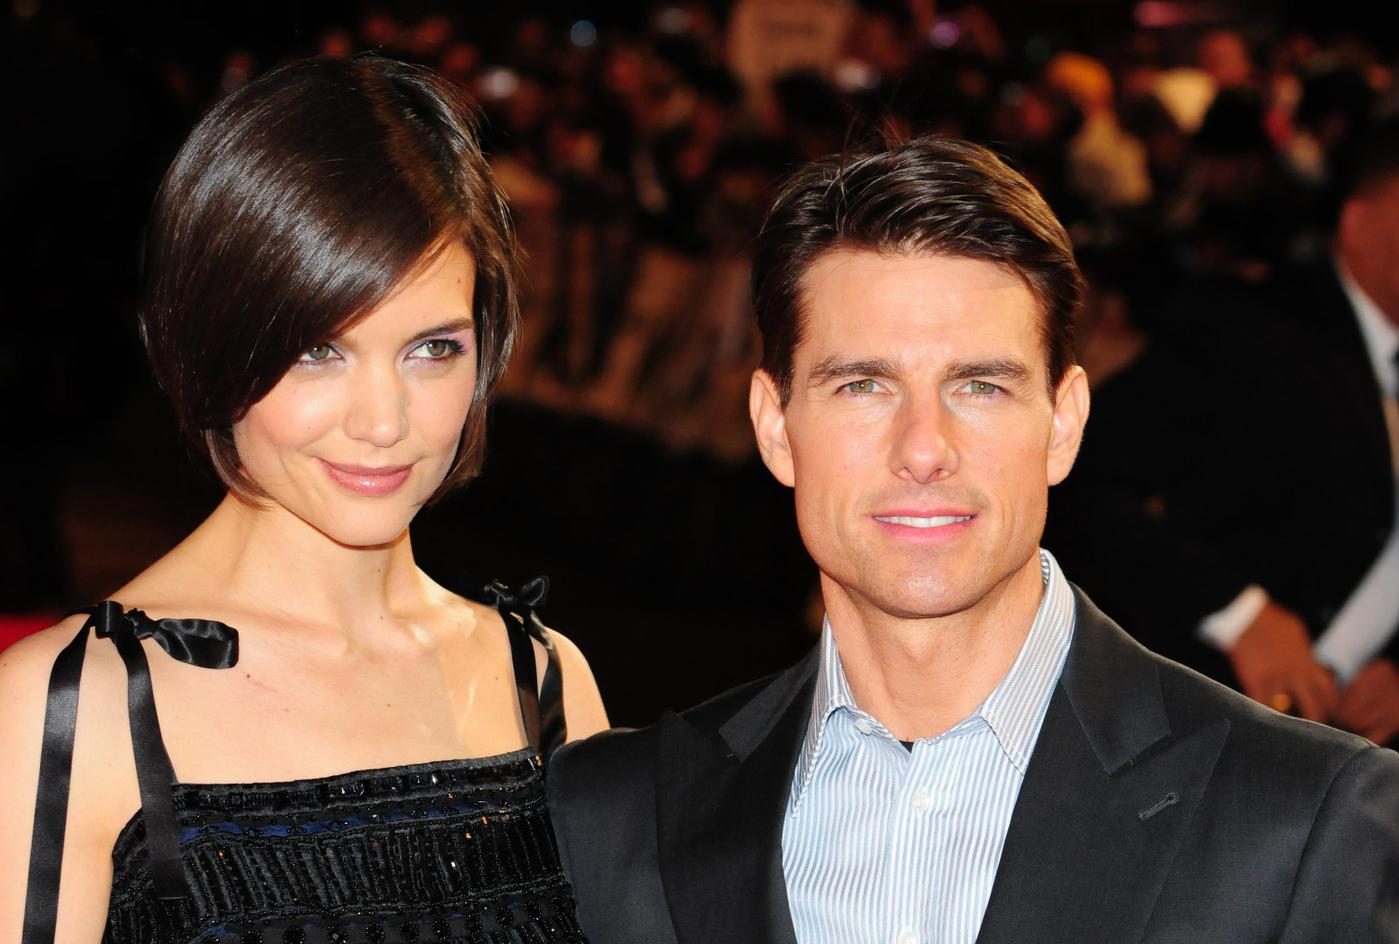 Tom Cruise,Scientology